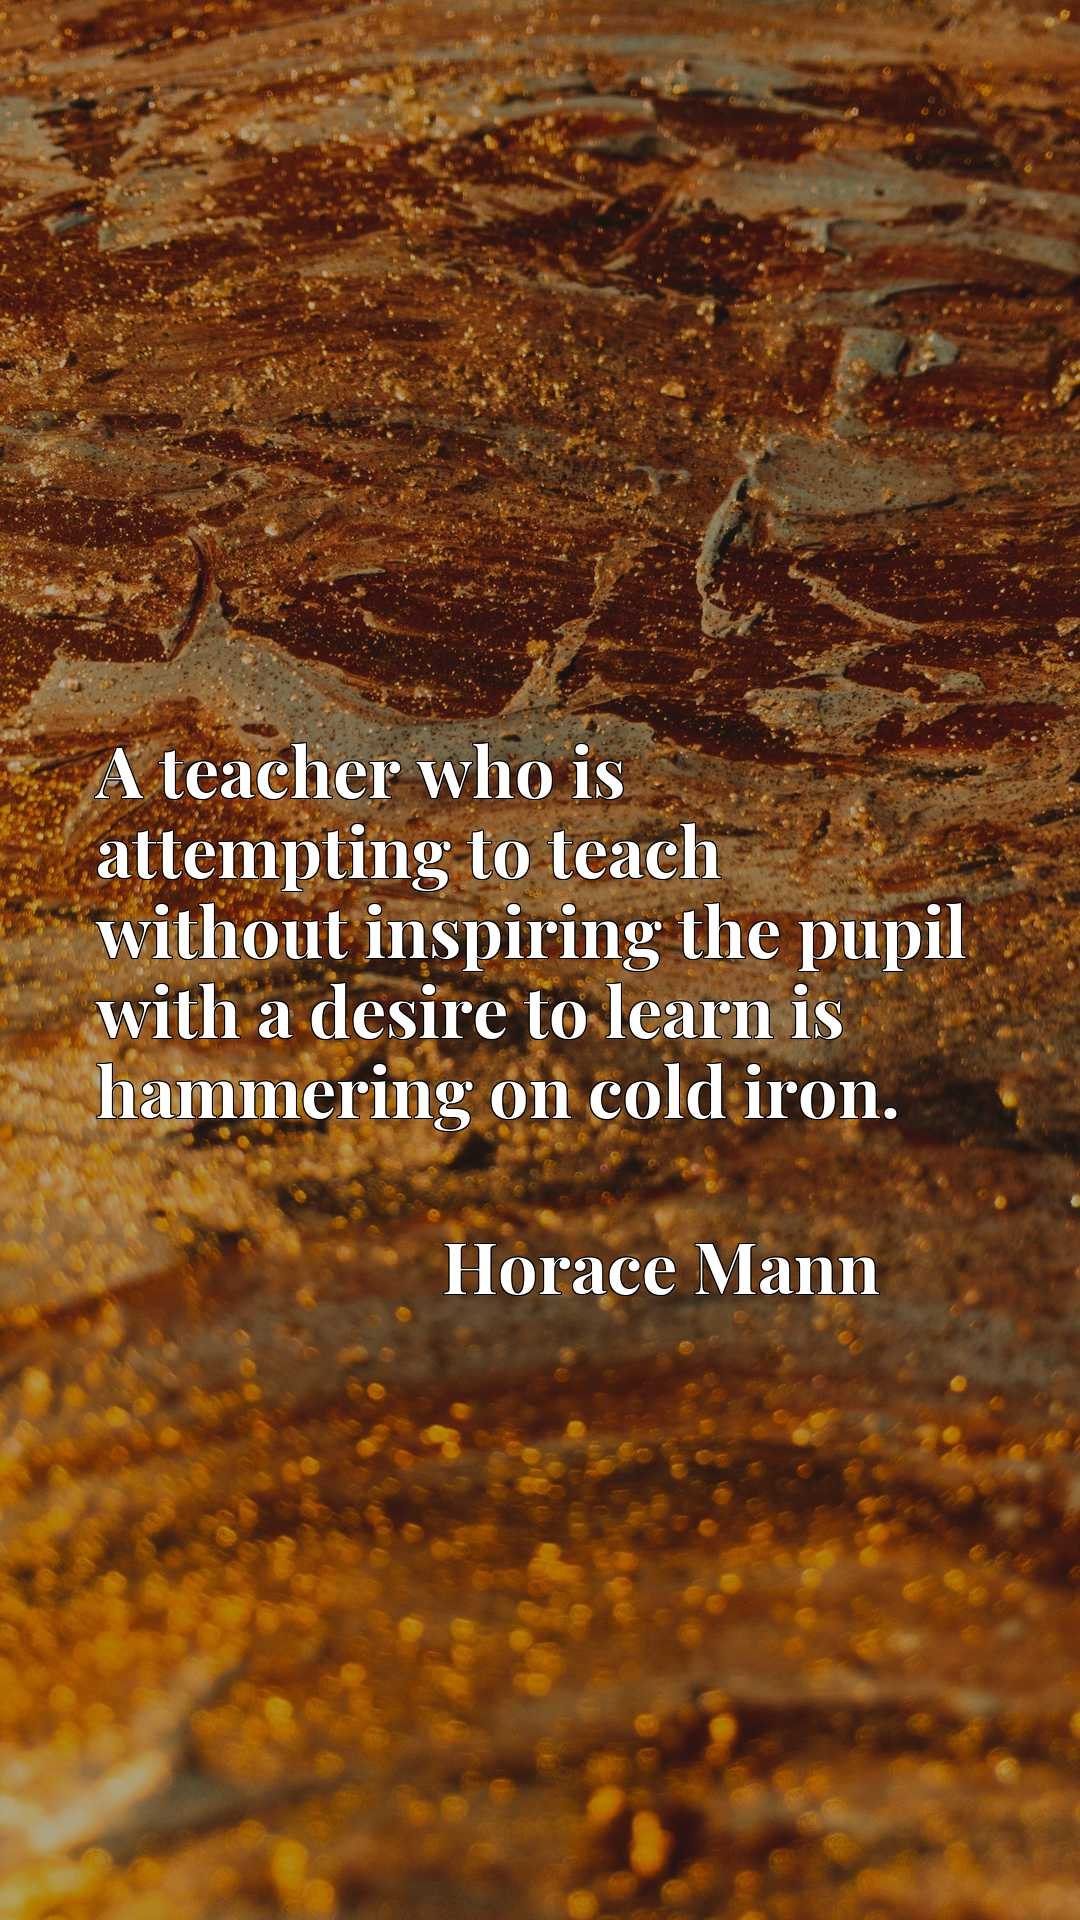 Quote Picture :A teacher who is attempting to teach without inspiring the pupil with a desire to learn is hammering on cold iron.